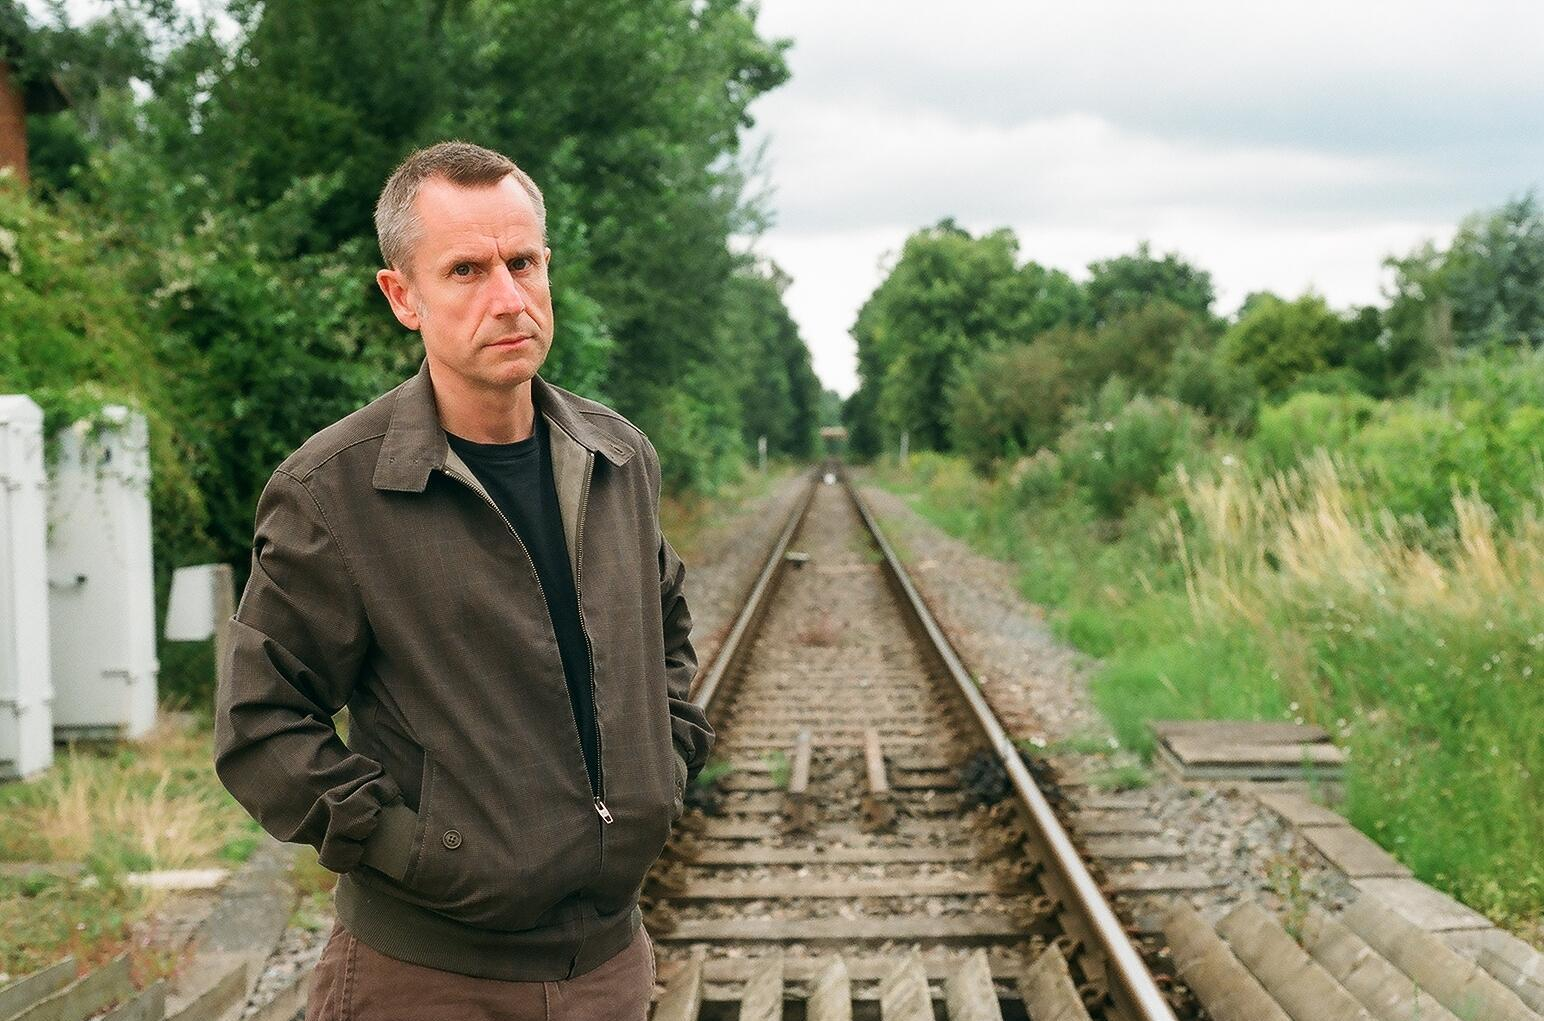 Jeremy Hardy will be bringing his new stand-up show to the Epsom Playhouse on December 6